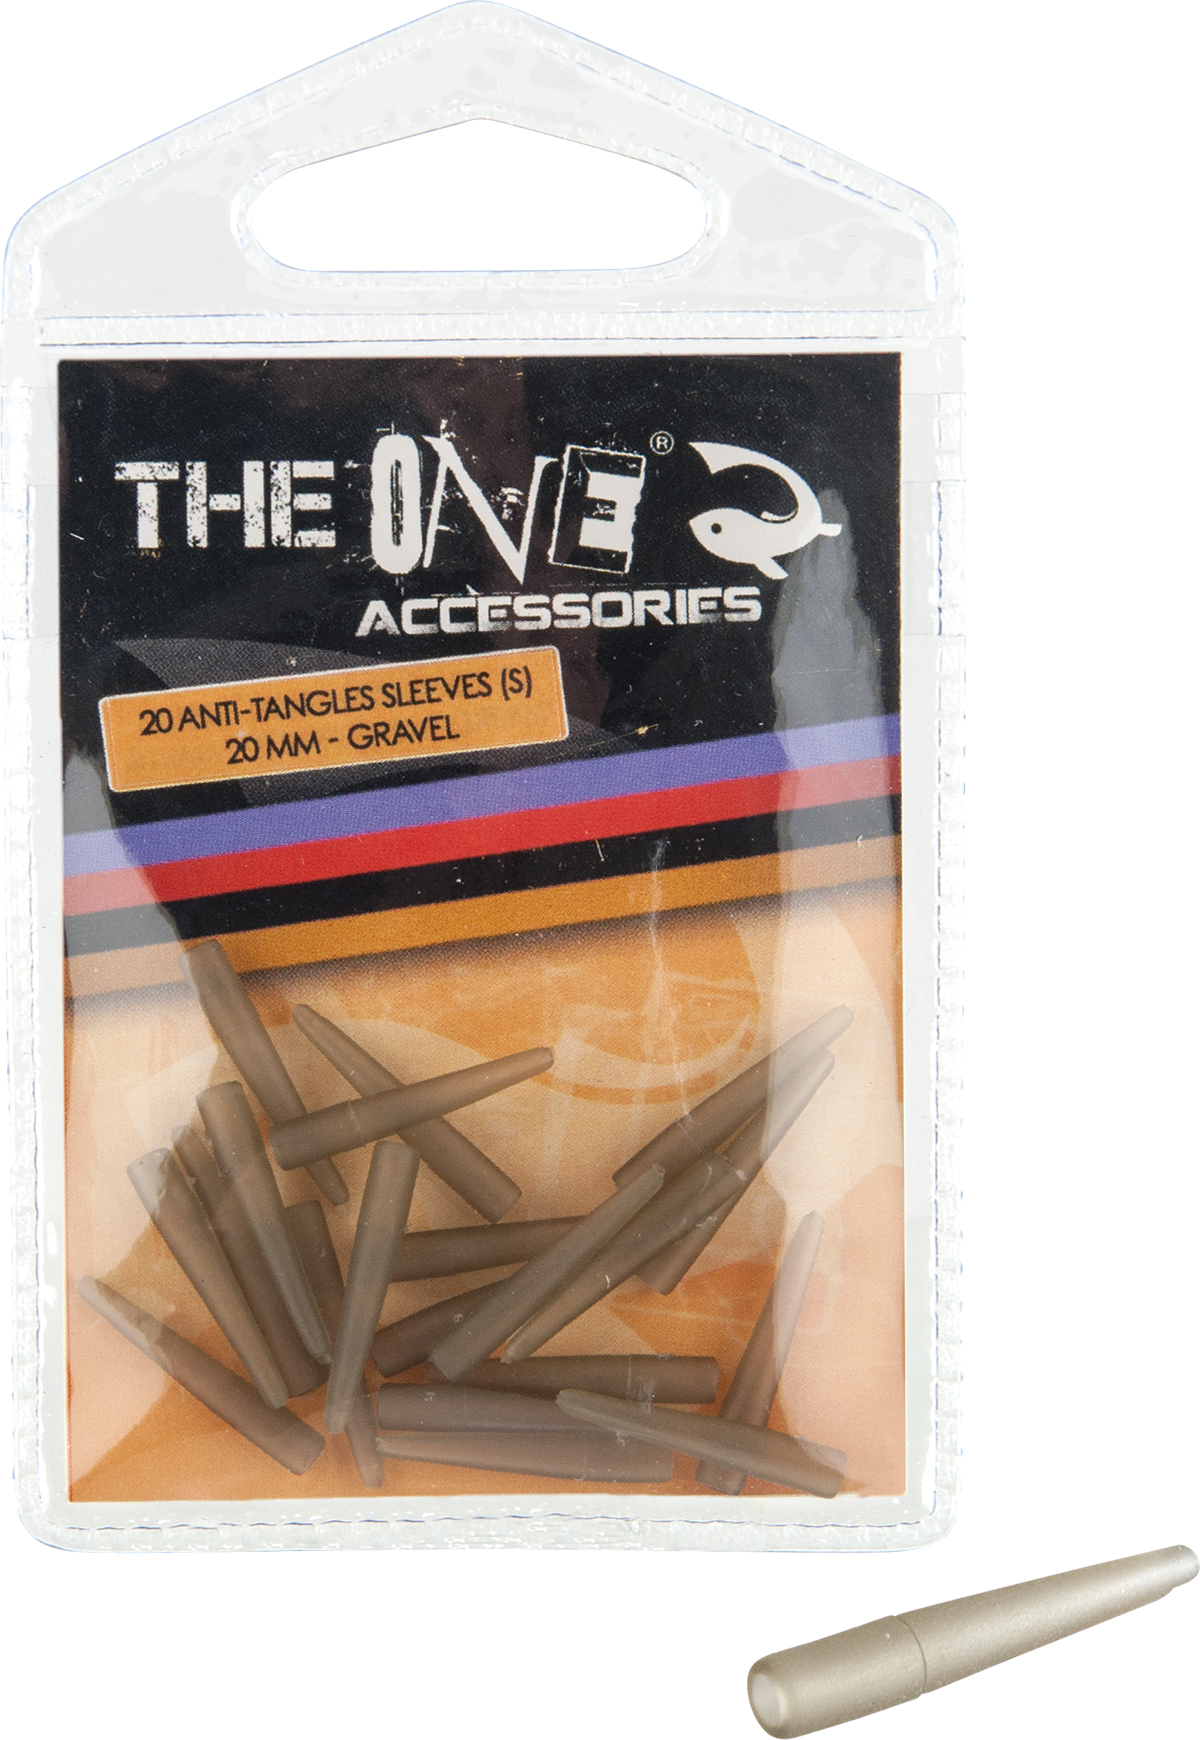 CONURI THE ONE ANTI-TANGLES SLEEVES 20mm GRAVEL 20db - 79040022